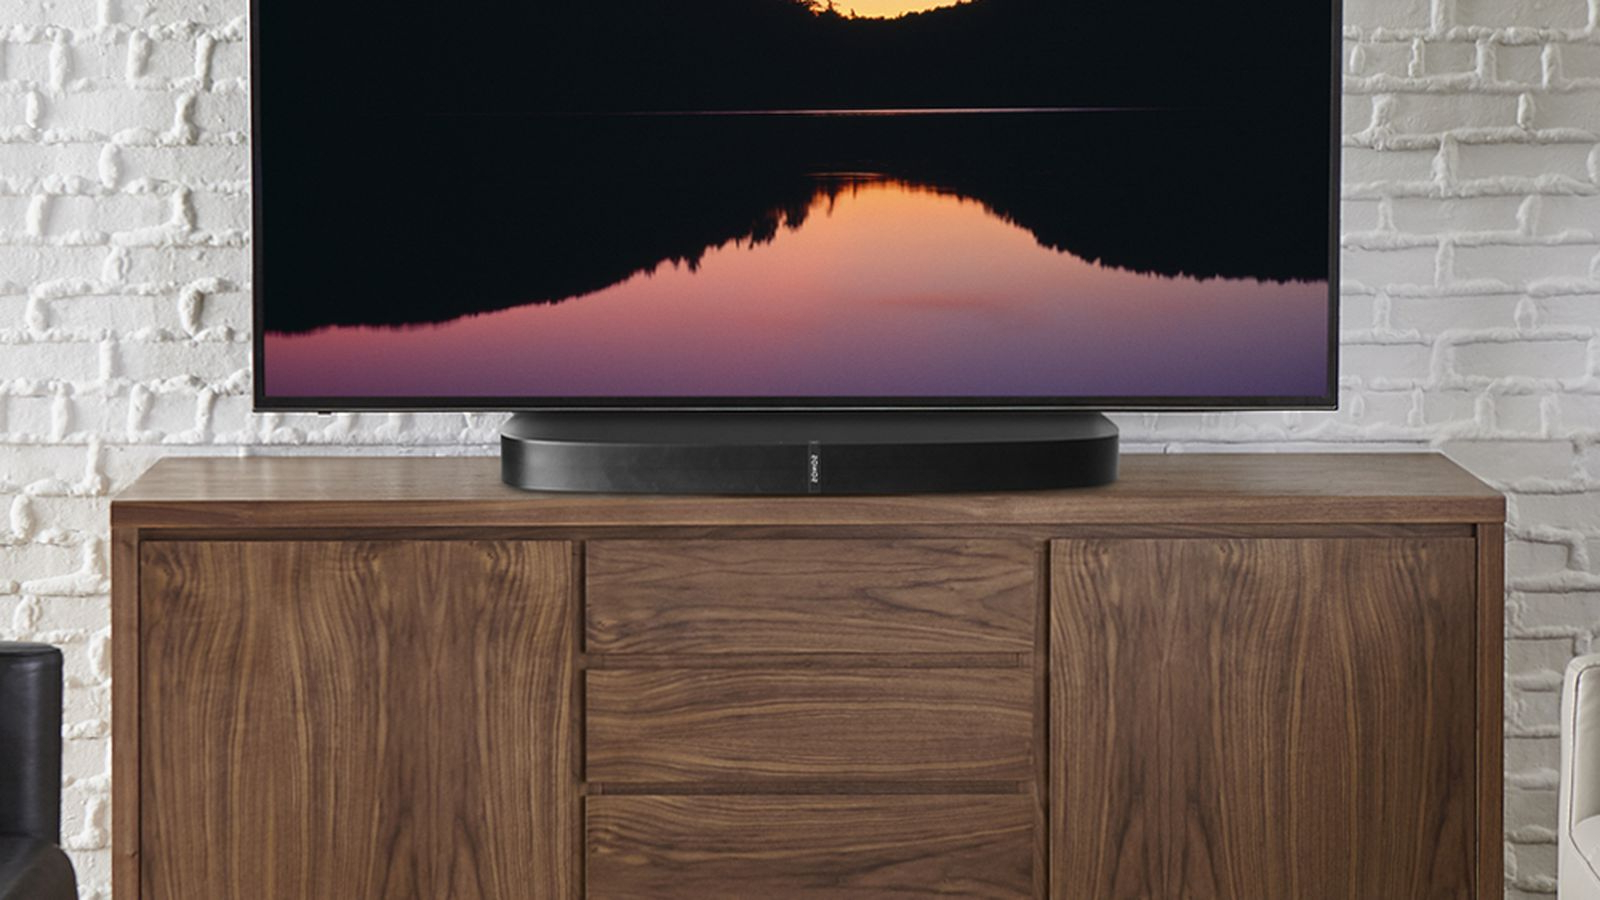 Sonos Tv Stands Throughout Most Recent Sonos Playbase Gets $150 Stand For Tvs That Won't Fit – Cnet (Gallery 8 of 20)